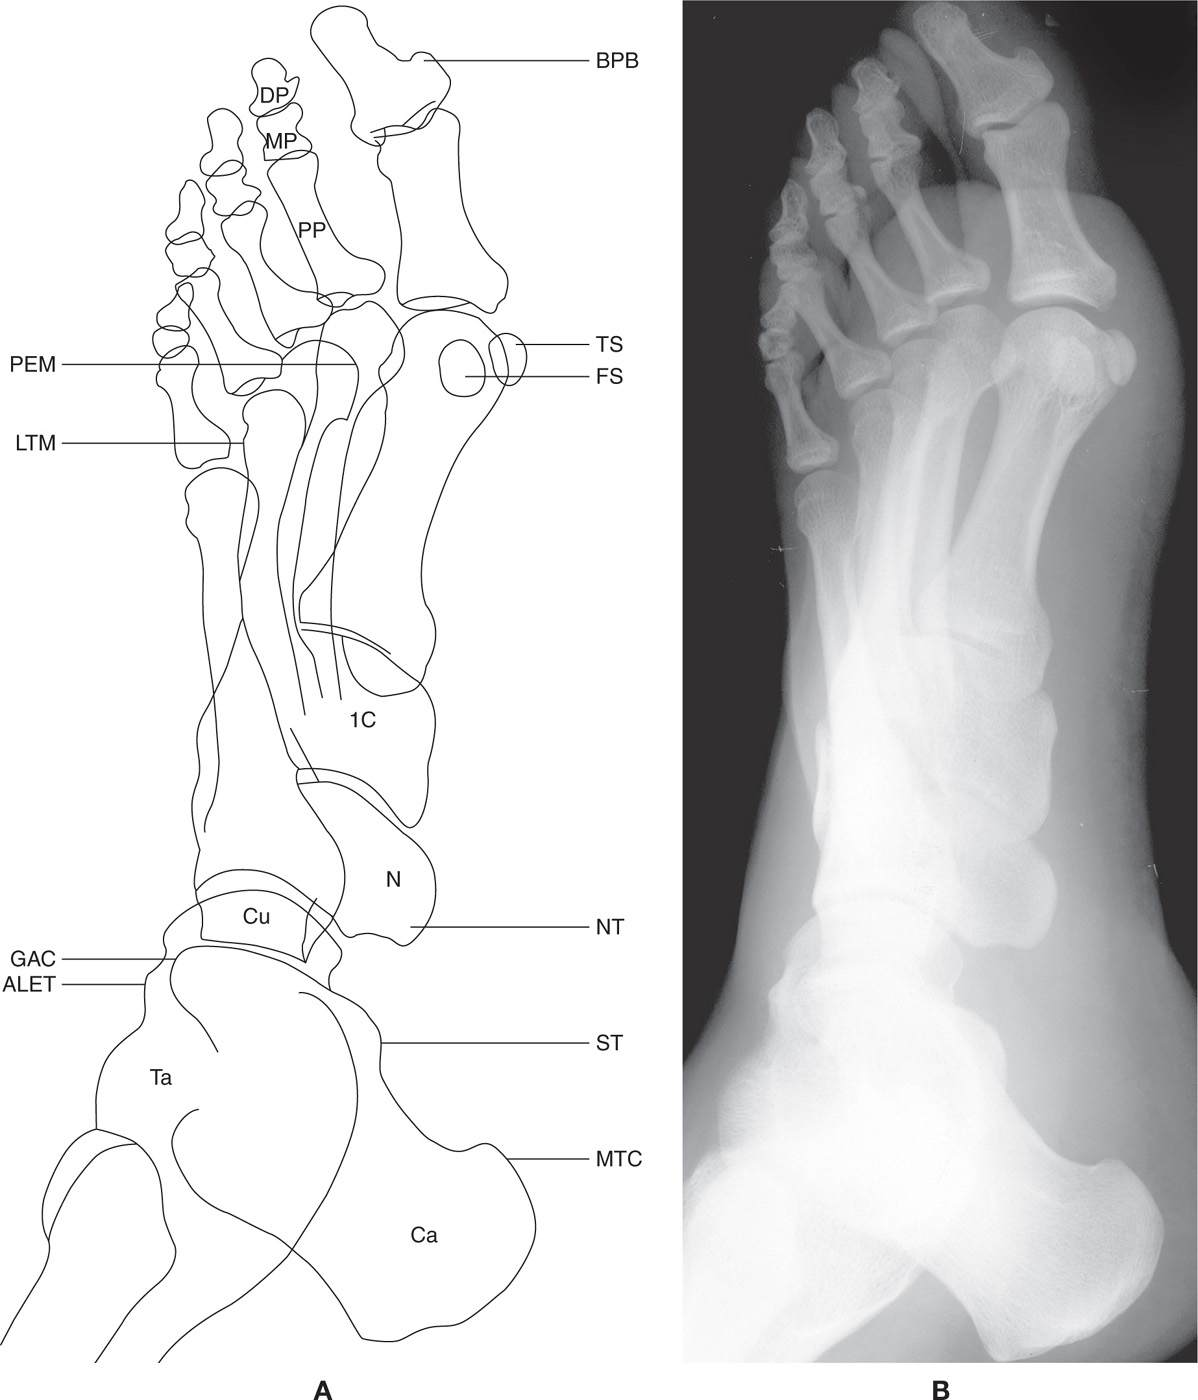 5: The Normal Foot and Ankle | Musculoskeletal Key